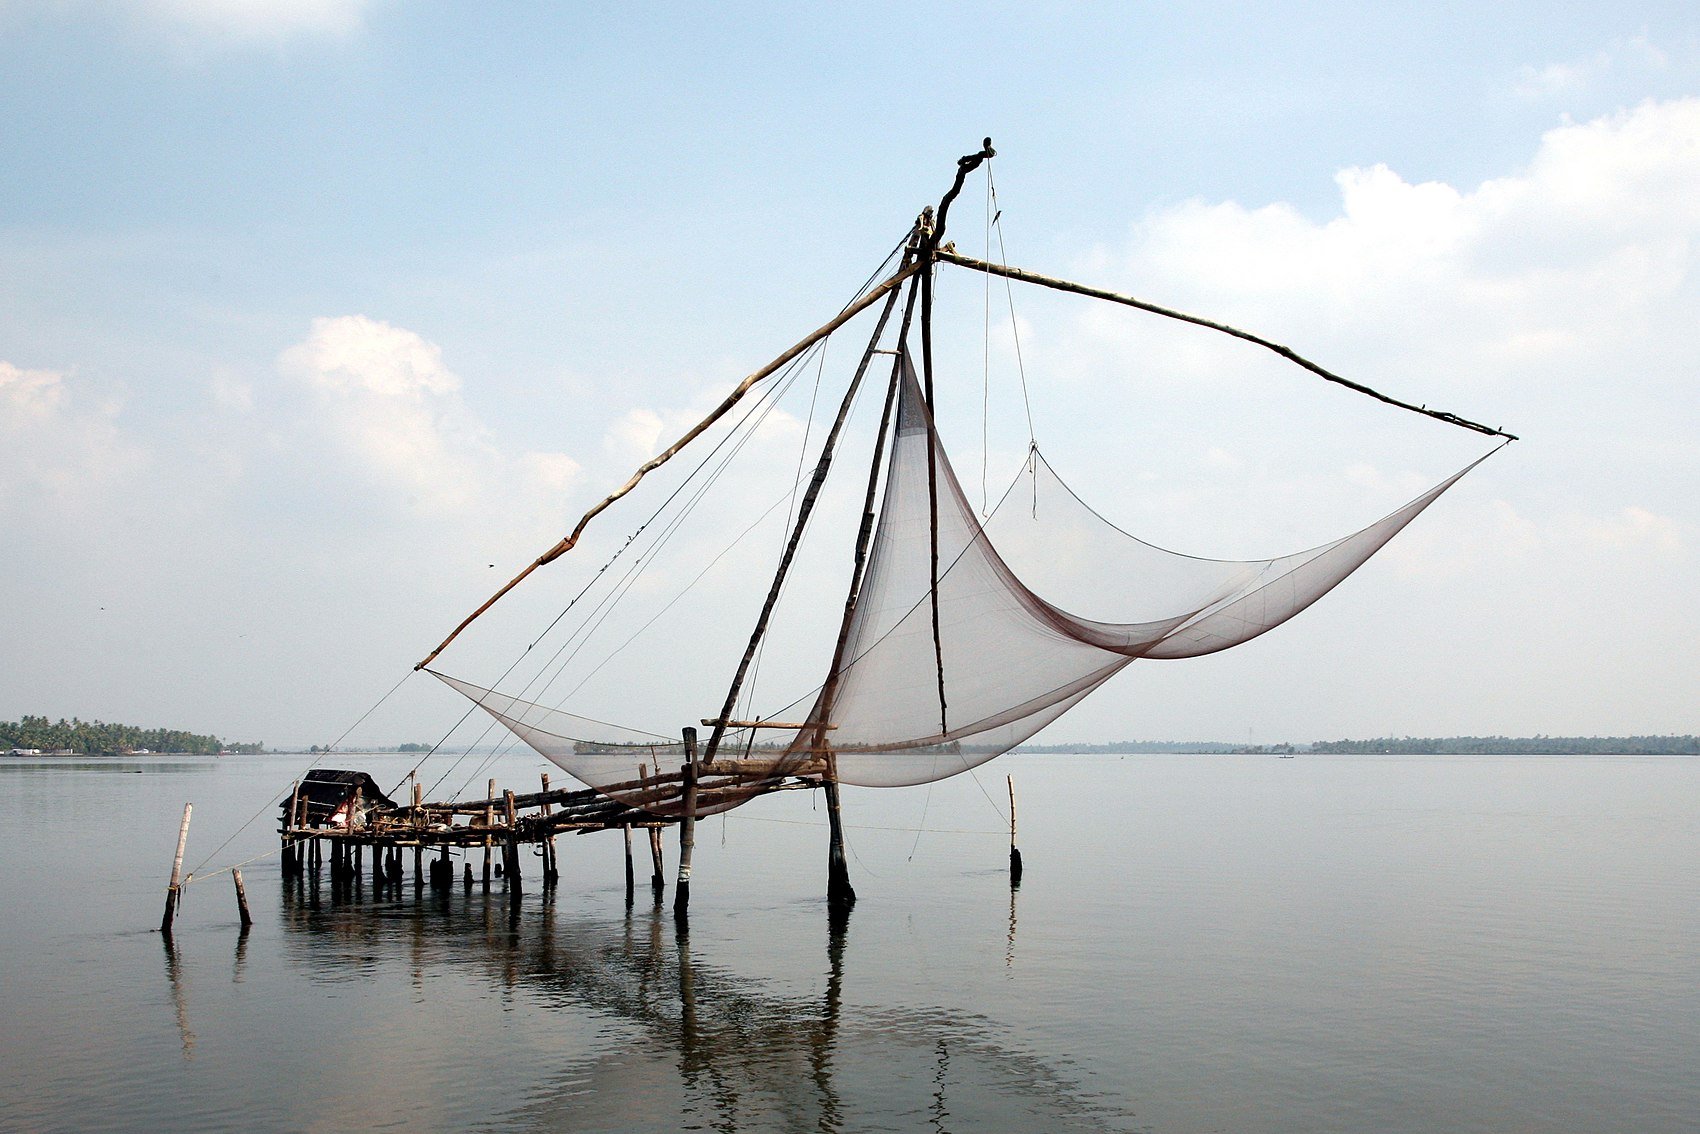 Kochi chinese fishing-net-20080215-01a.jpg